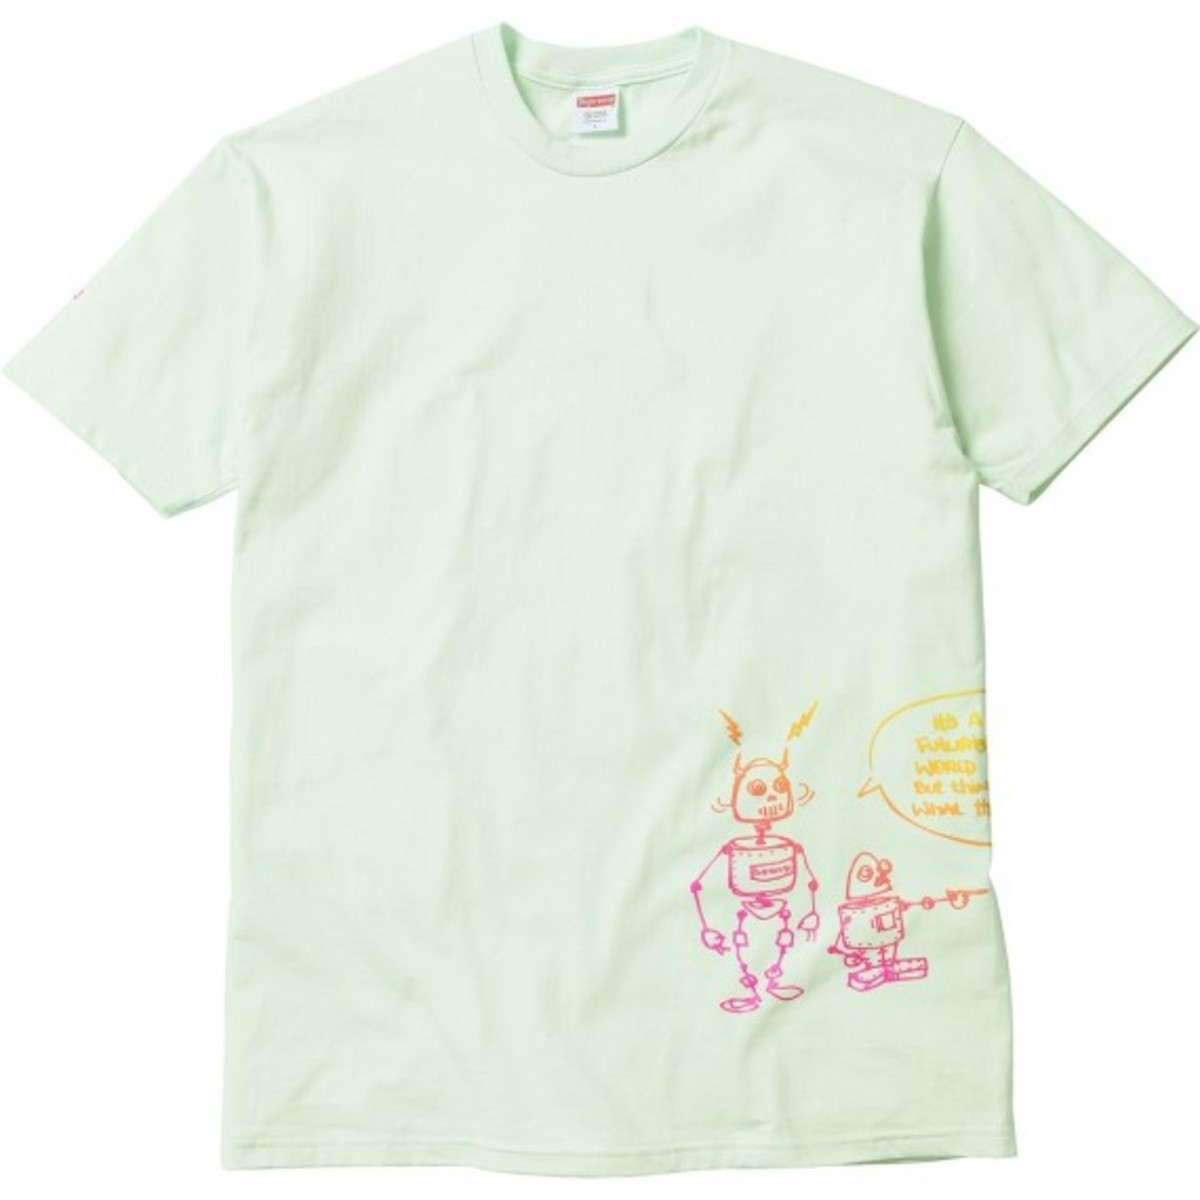 lance-mountain-supreme-robot-tee-05